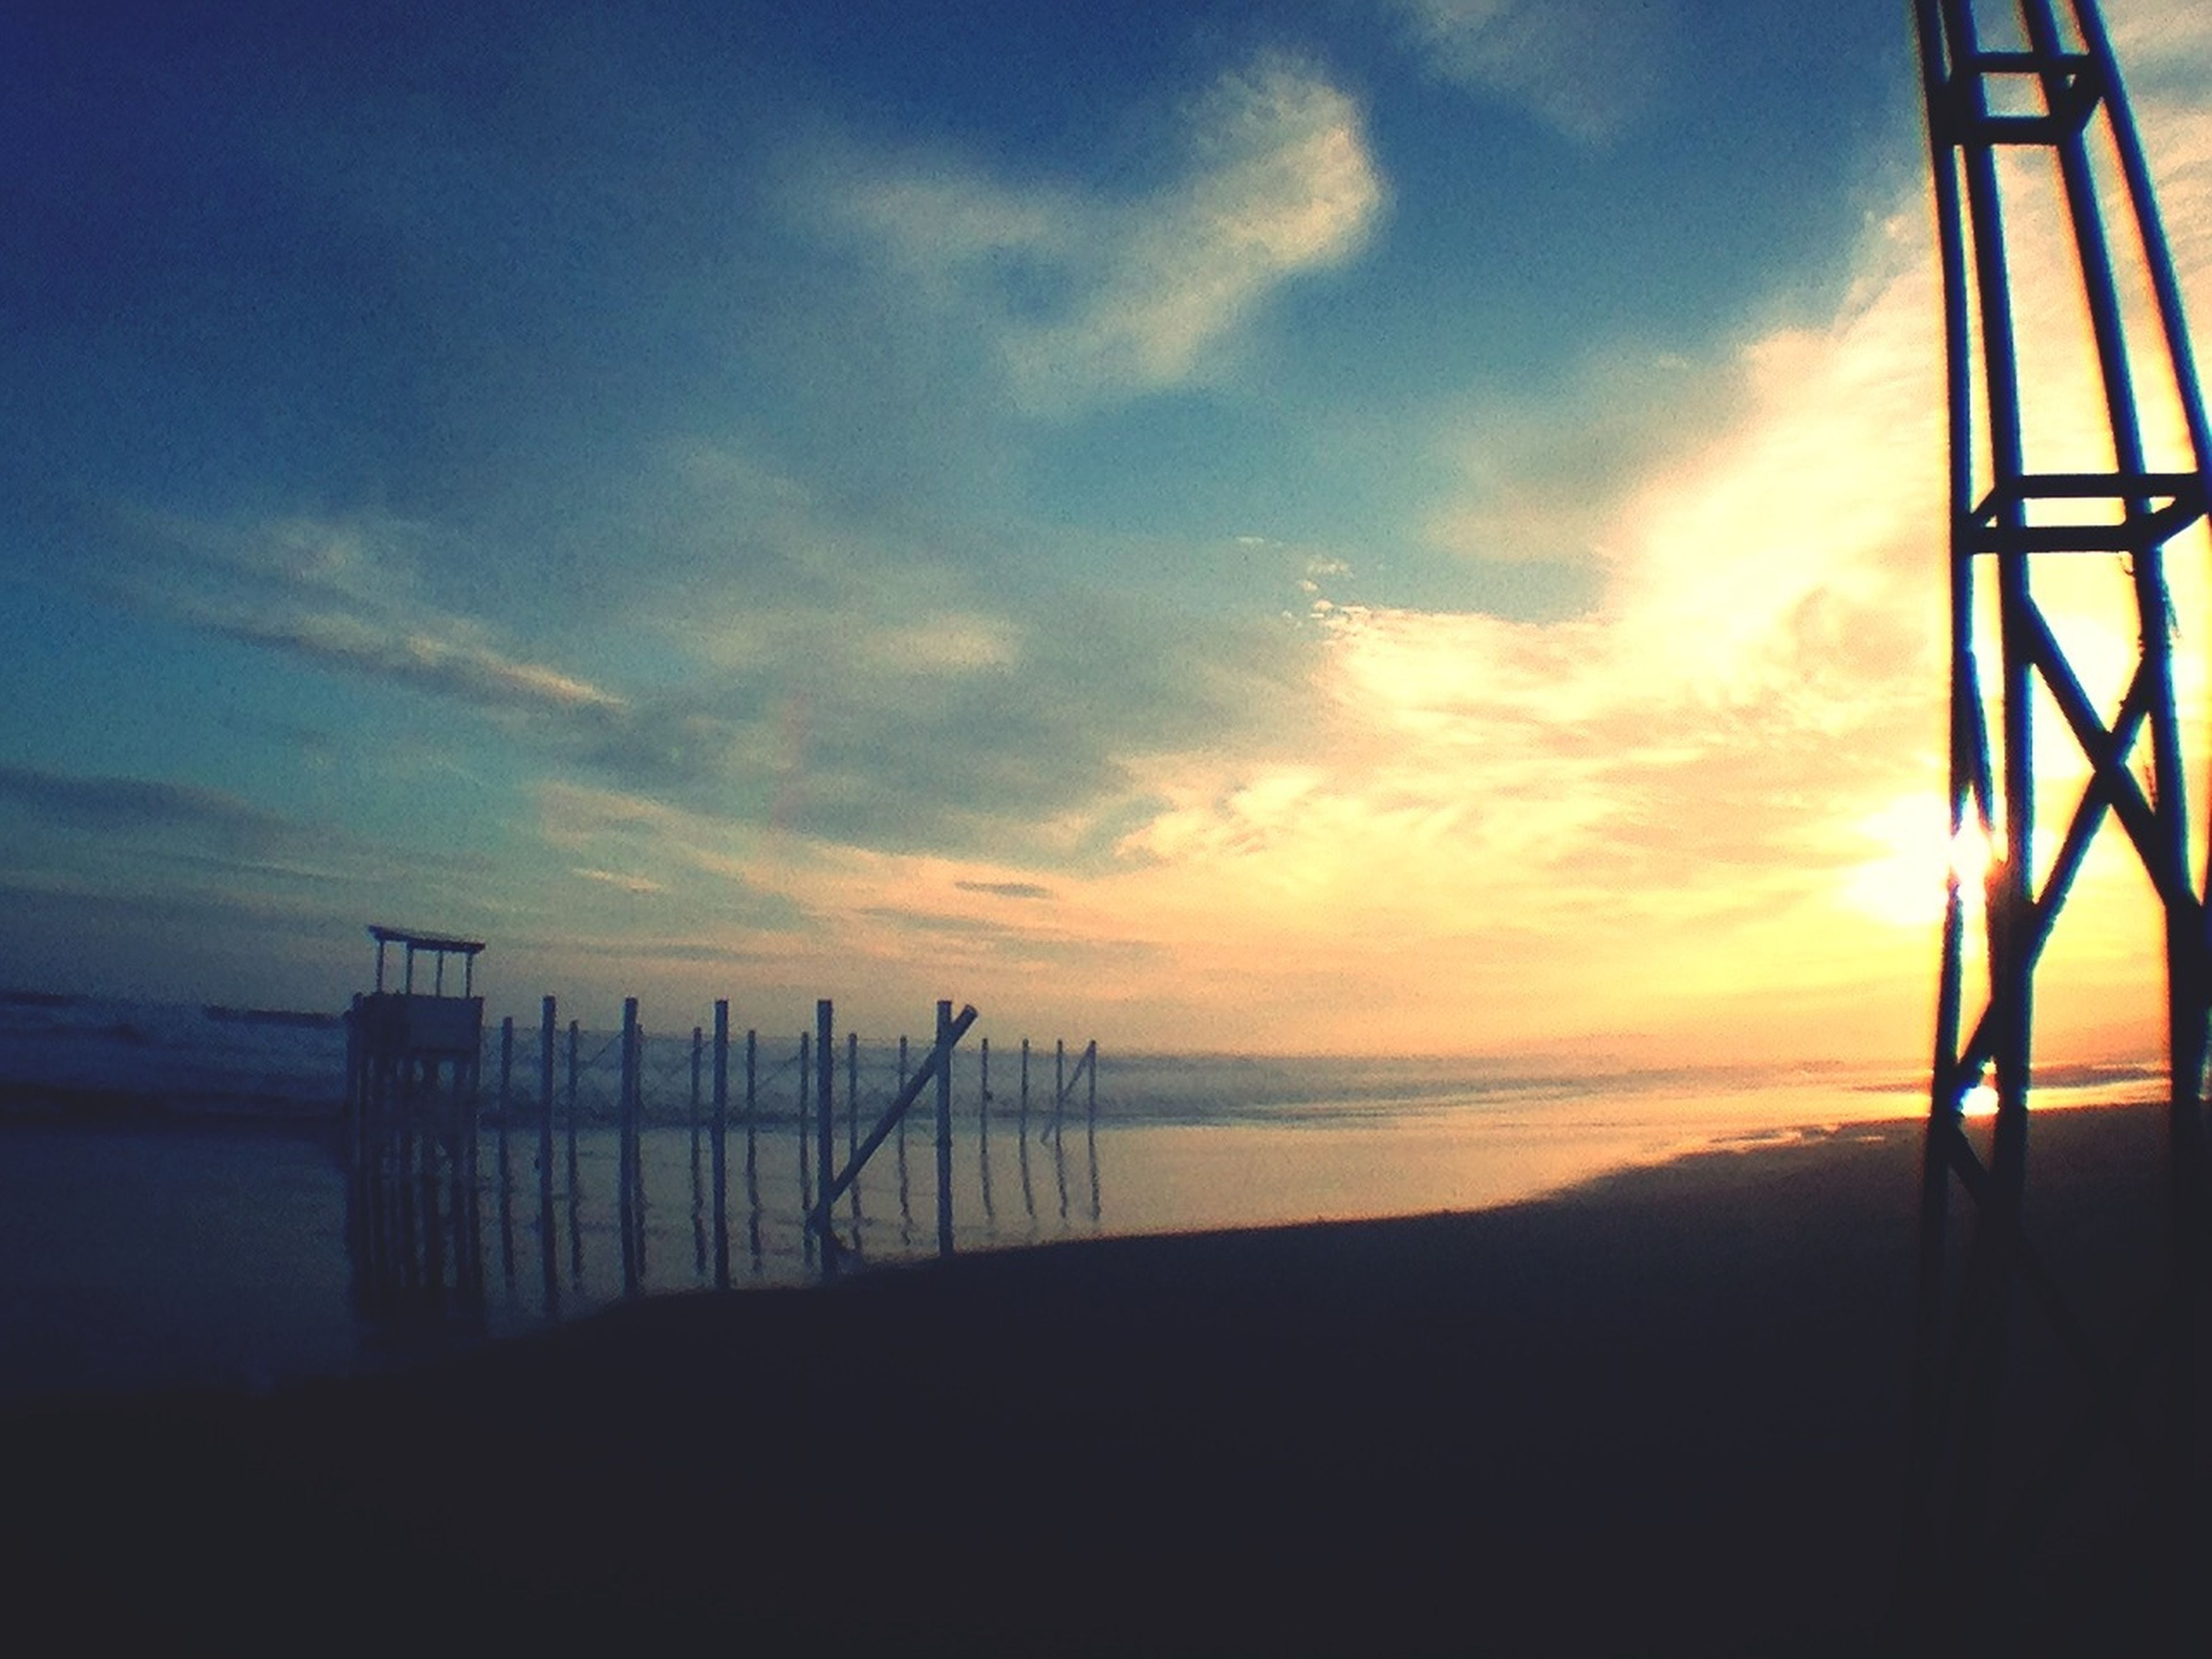 sea, sunset, horizon over water, sky, water, tranquility, silhouette, tranquil scene, scenics, beach, beauty in nature, nature, shore, idyllic, cloud - sky, cloud, calm, remote, outdoors, non-urban scene